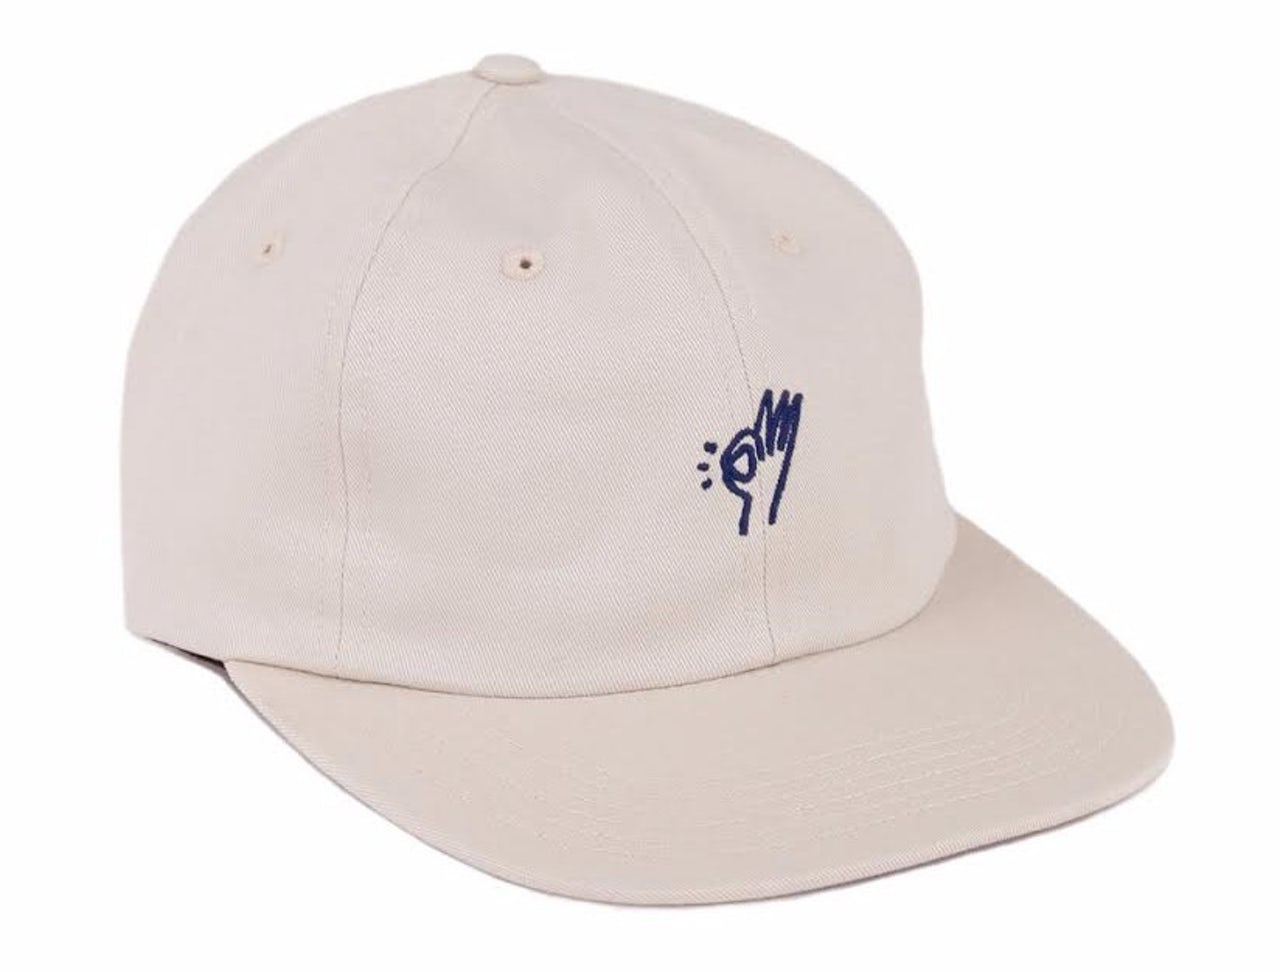 The OK Polo Hat from Only NY.